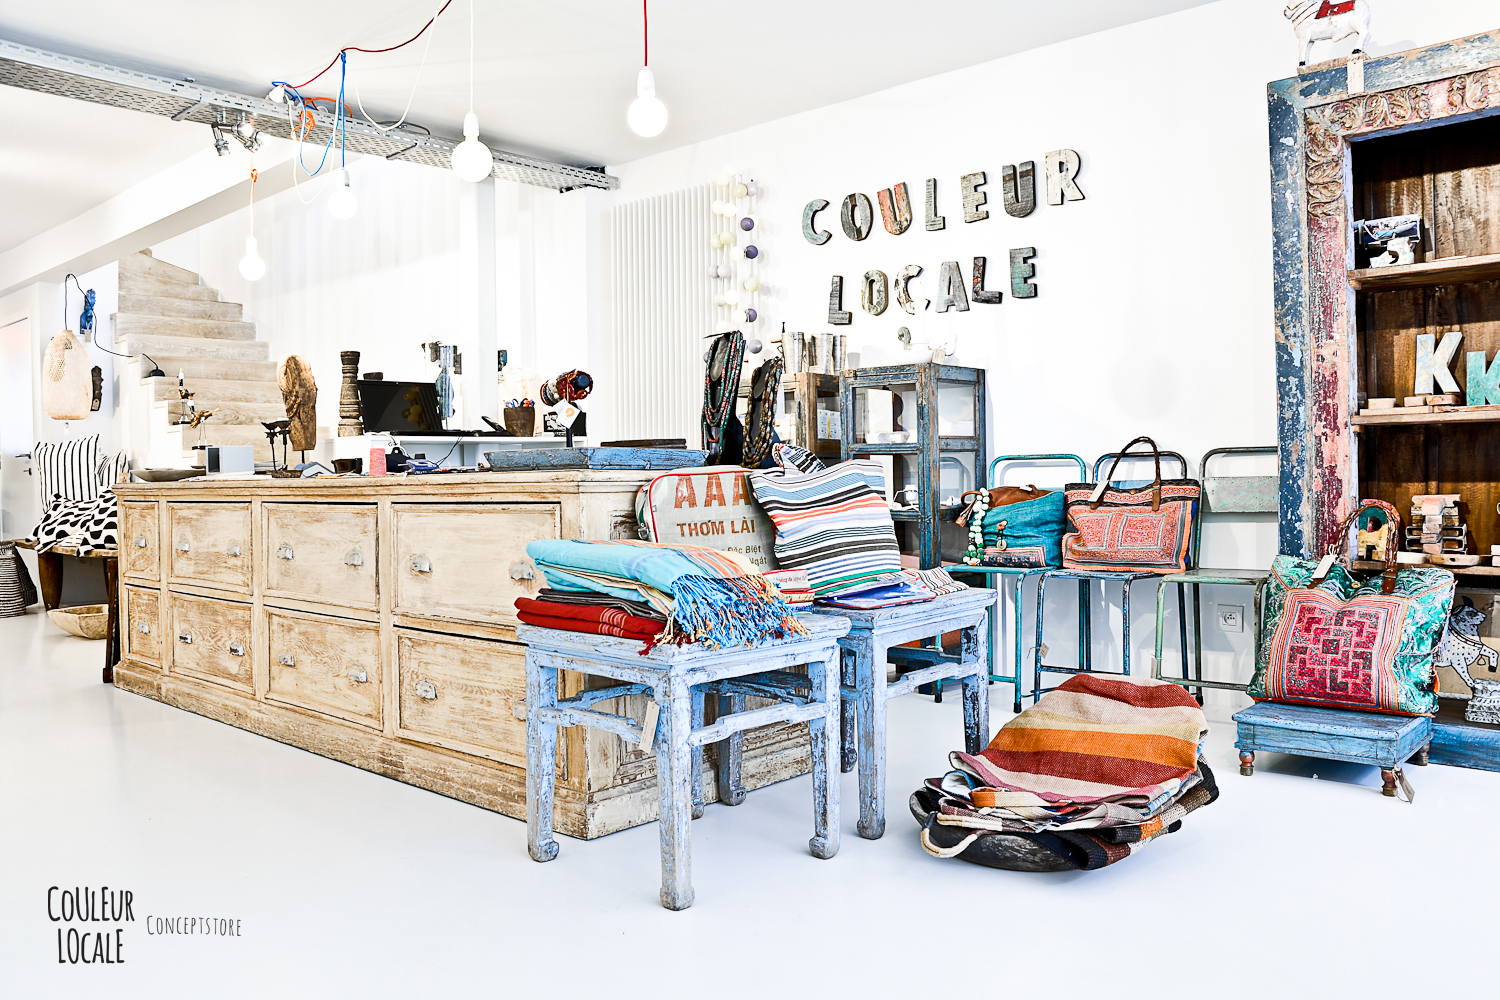 Couleur Locale conceptstore  Frenchy Fancy